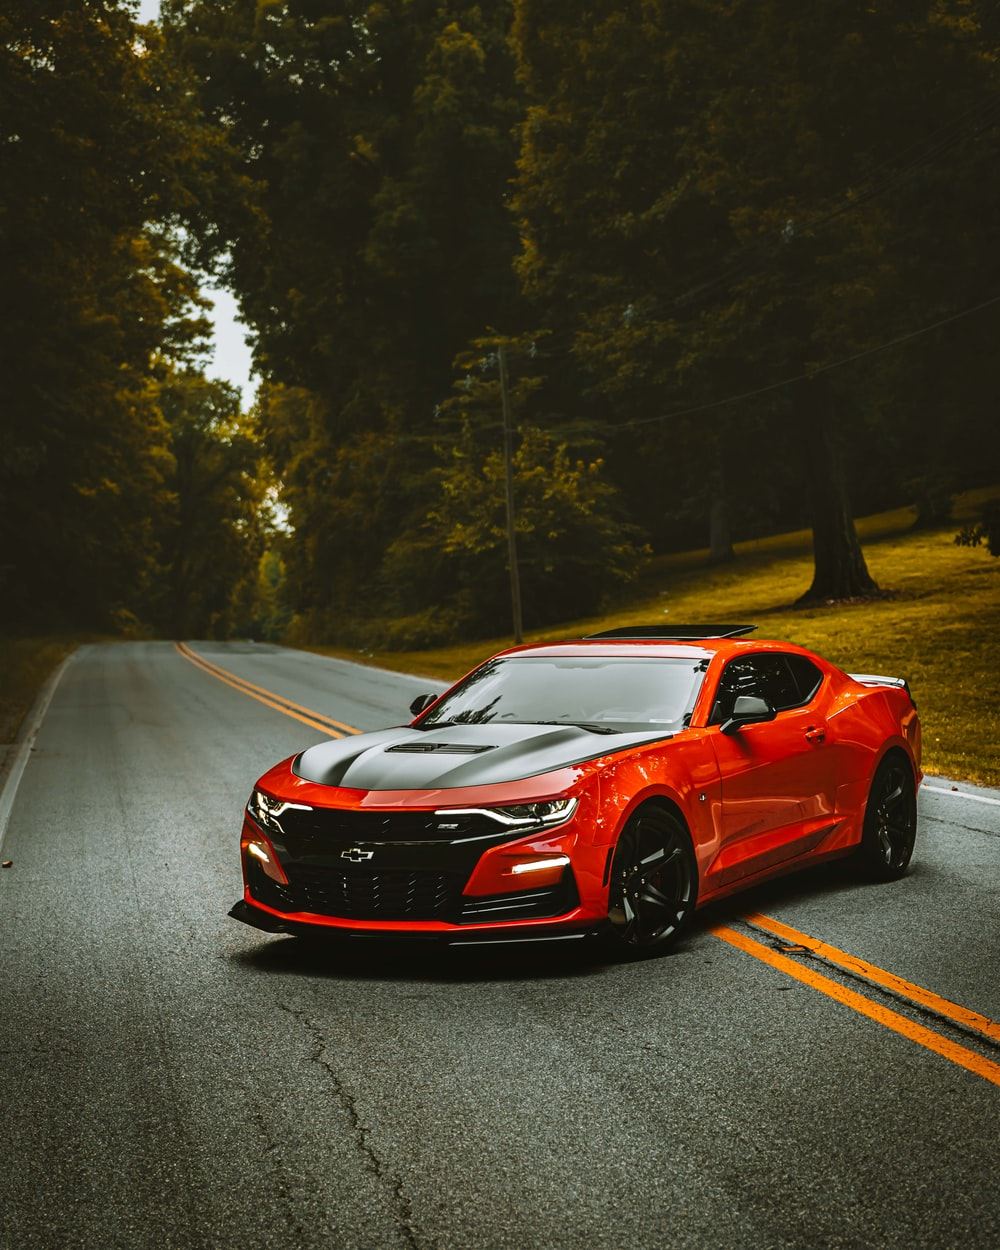 red and black car